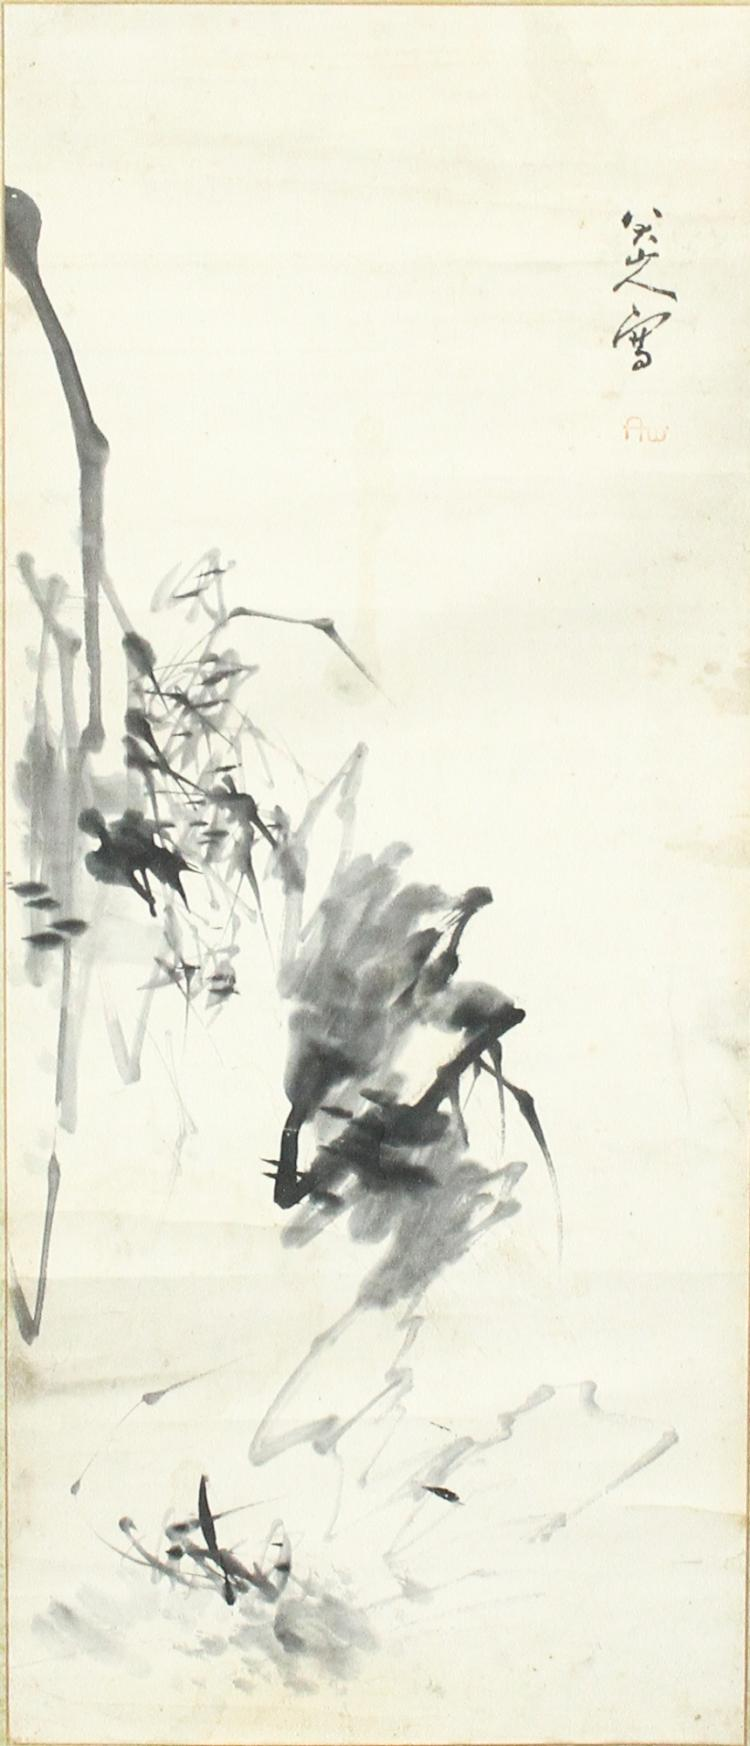 Bada Shanren 1626-1705 Ink on Paper Scroll